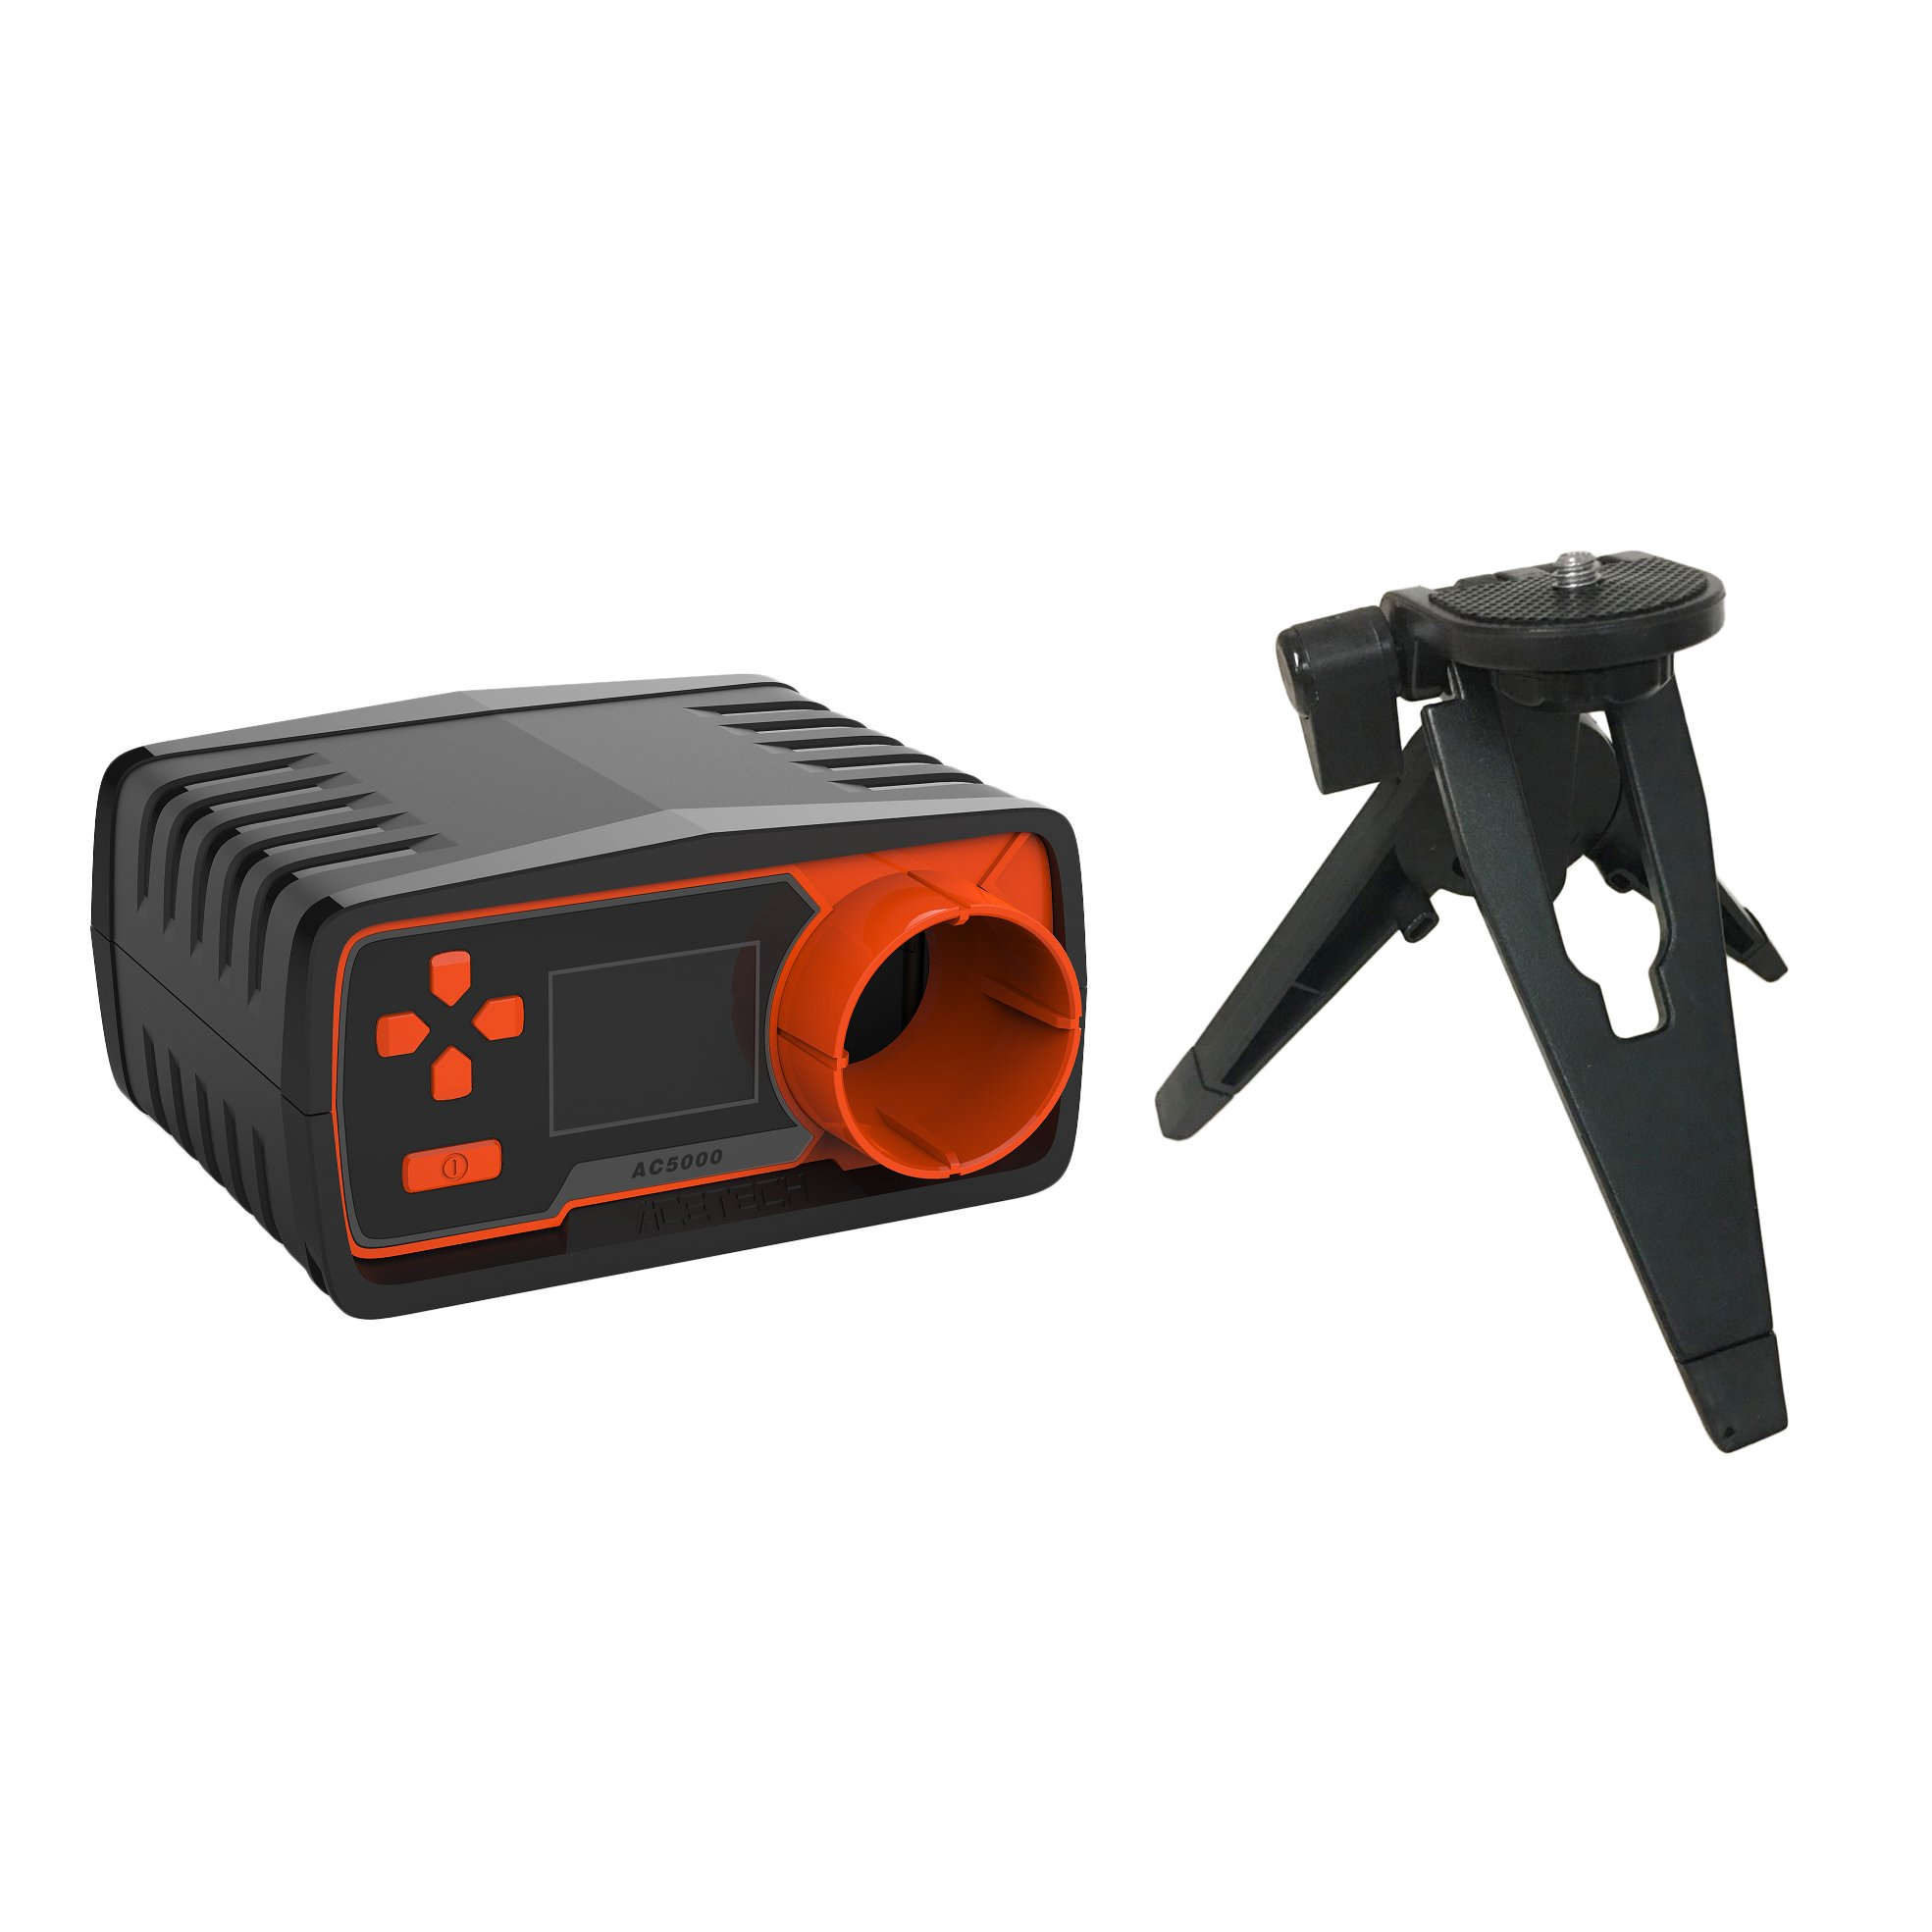 Basicest Acetech AC5000 Airsoft Shooting Chronograph with a Tripod